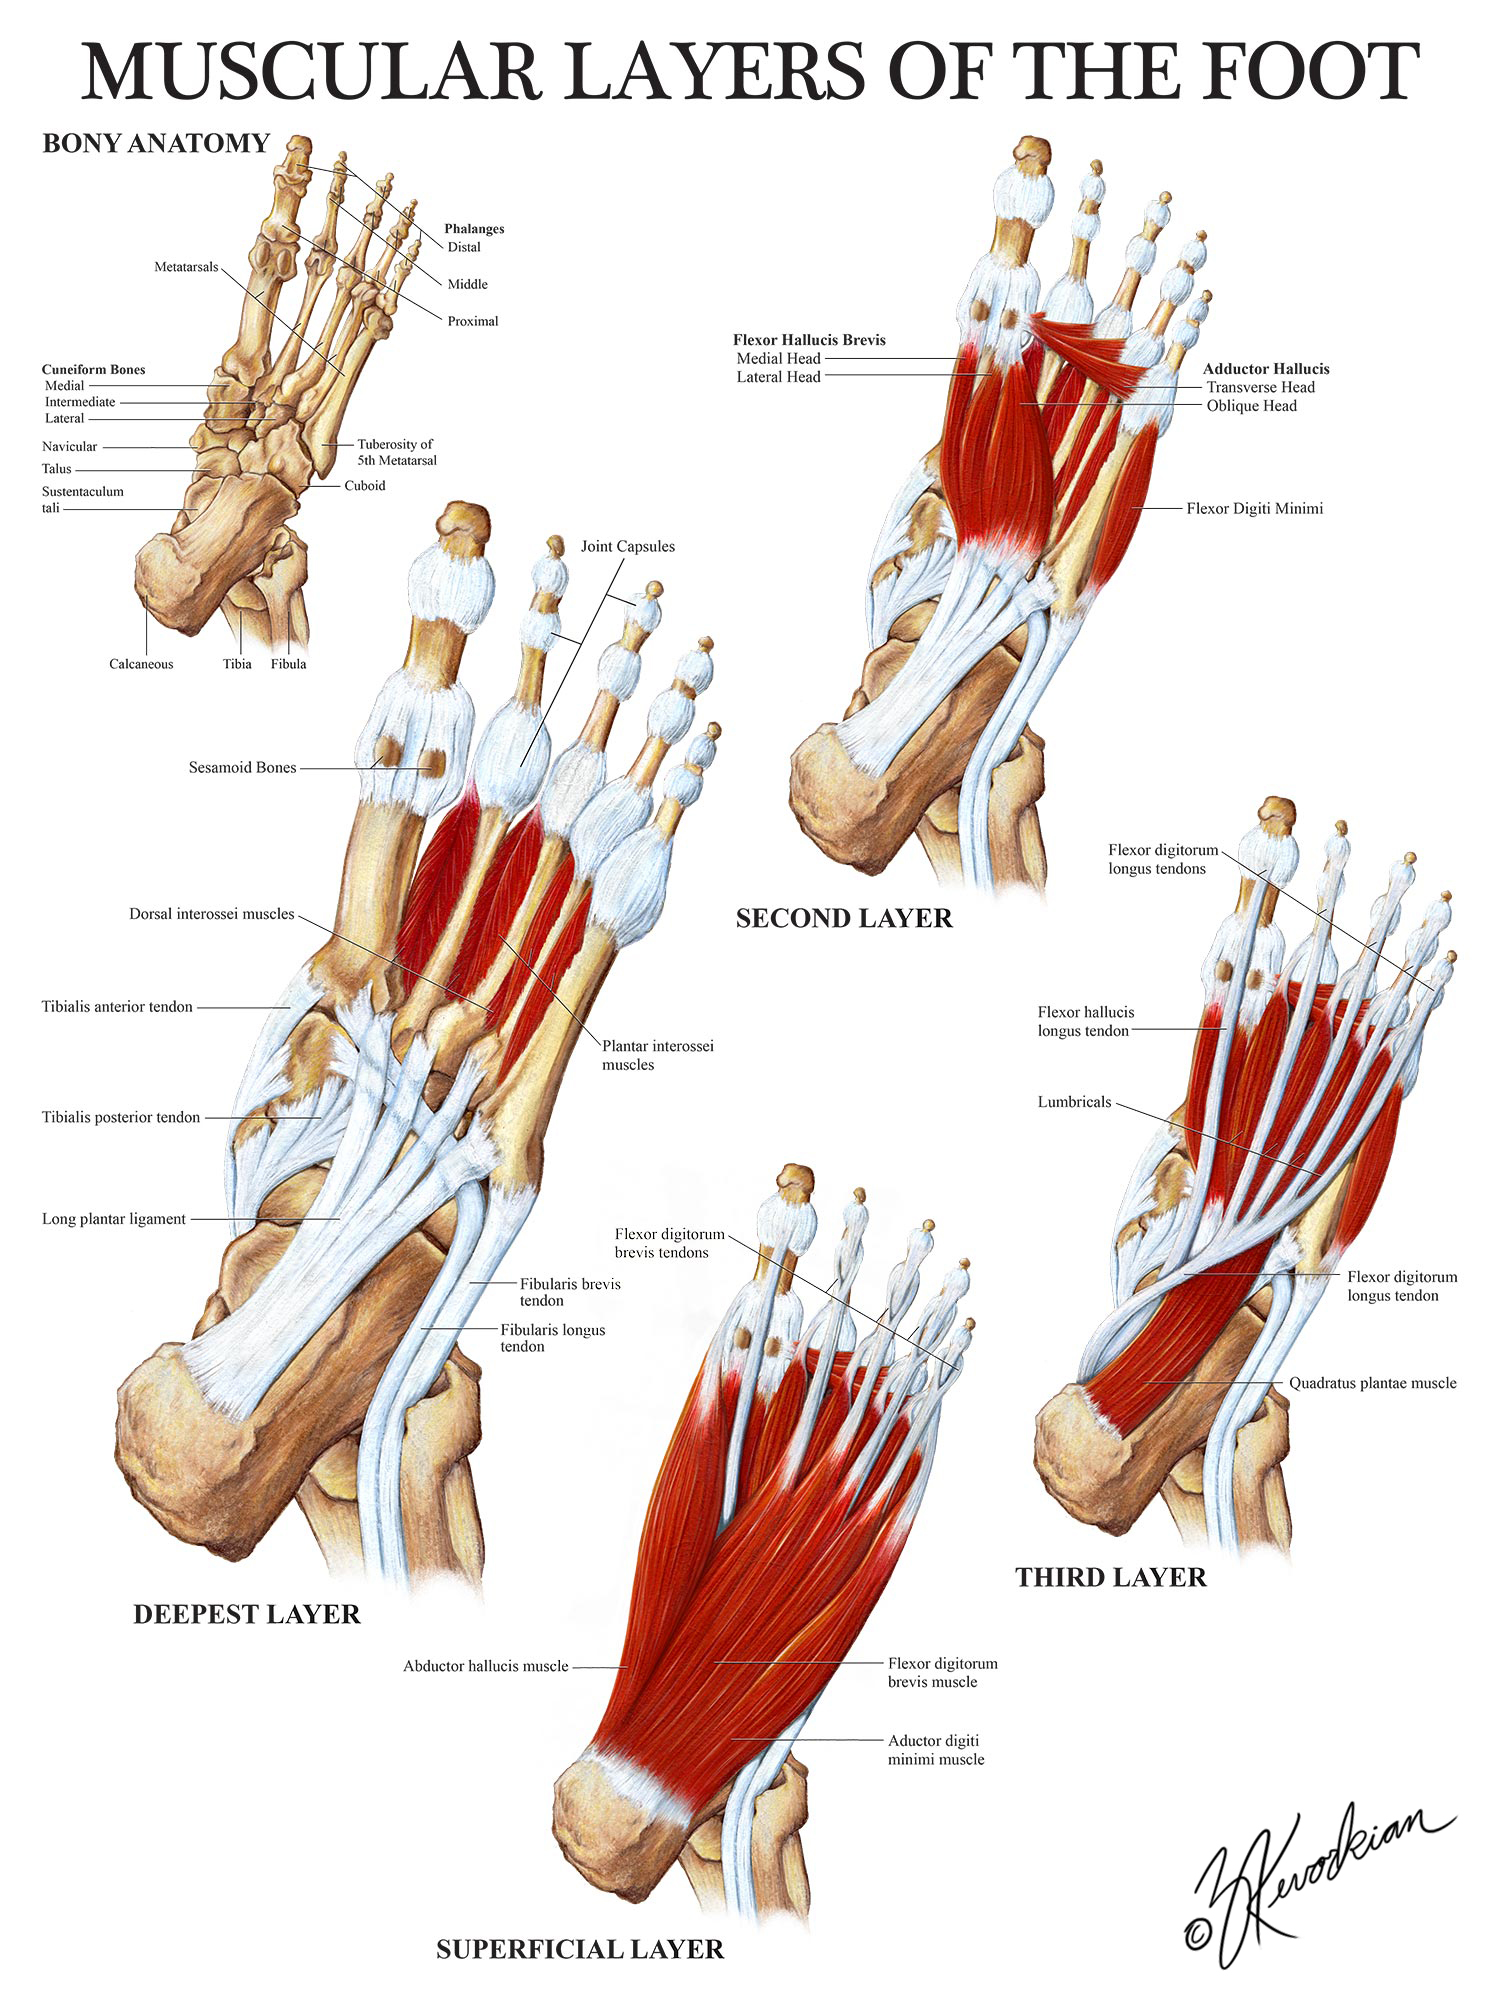 Muscular Layers of the Foot